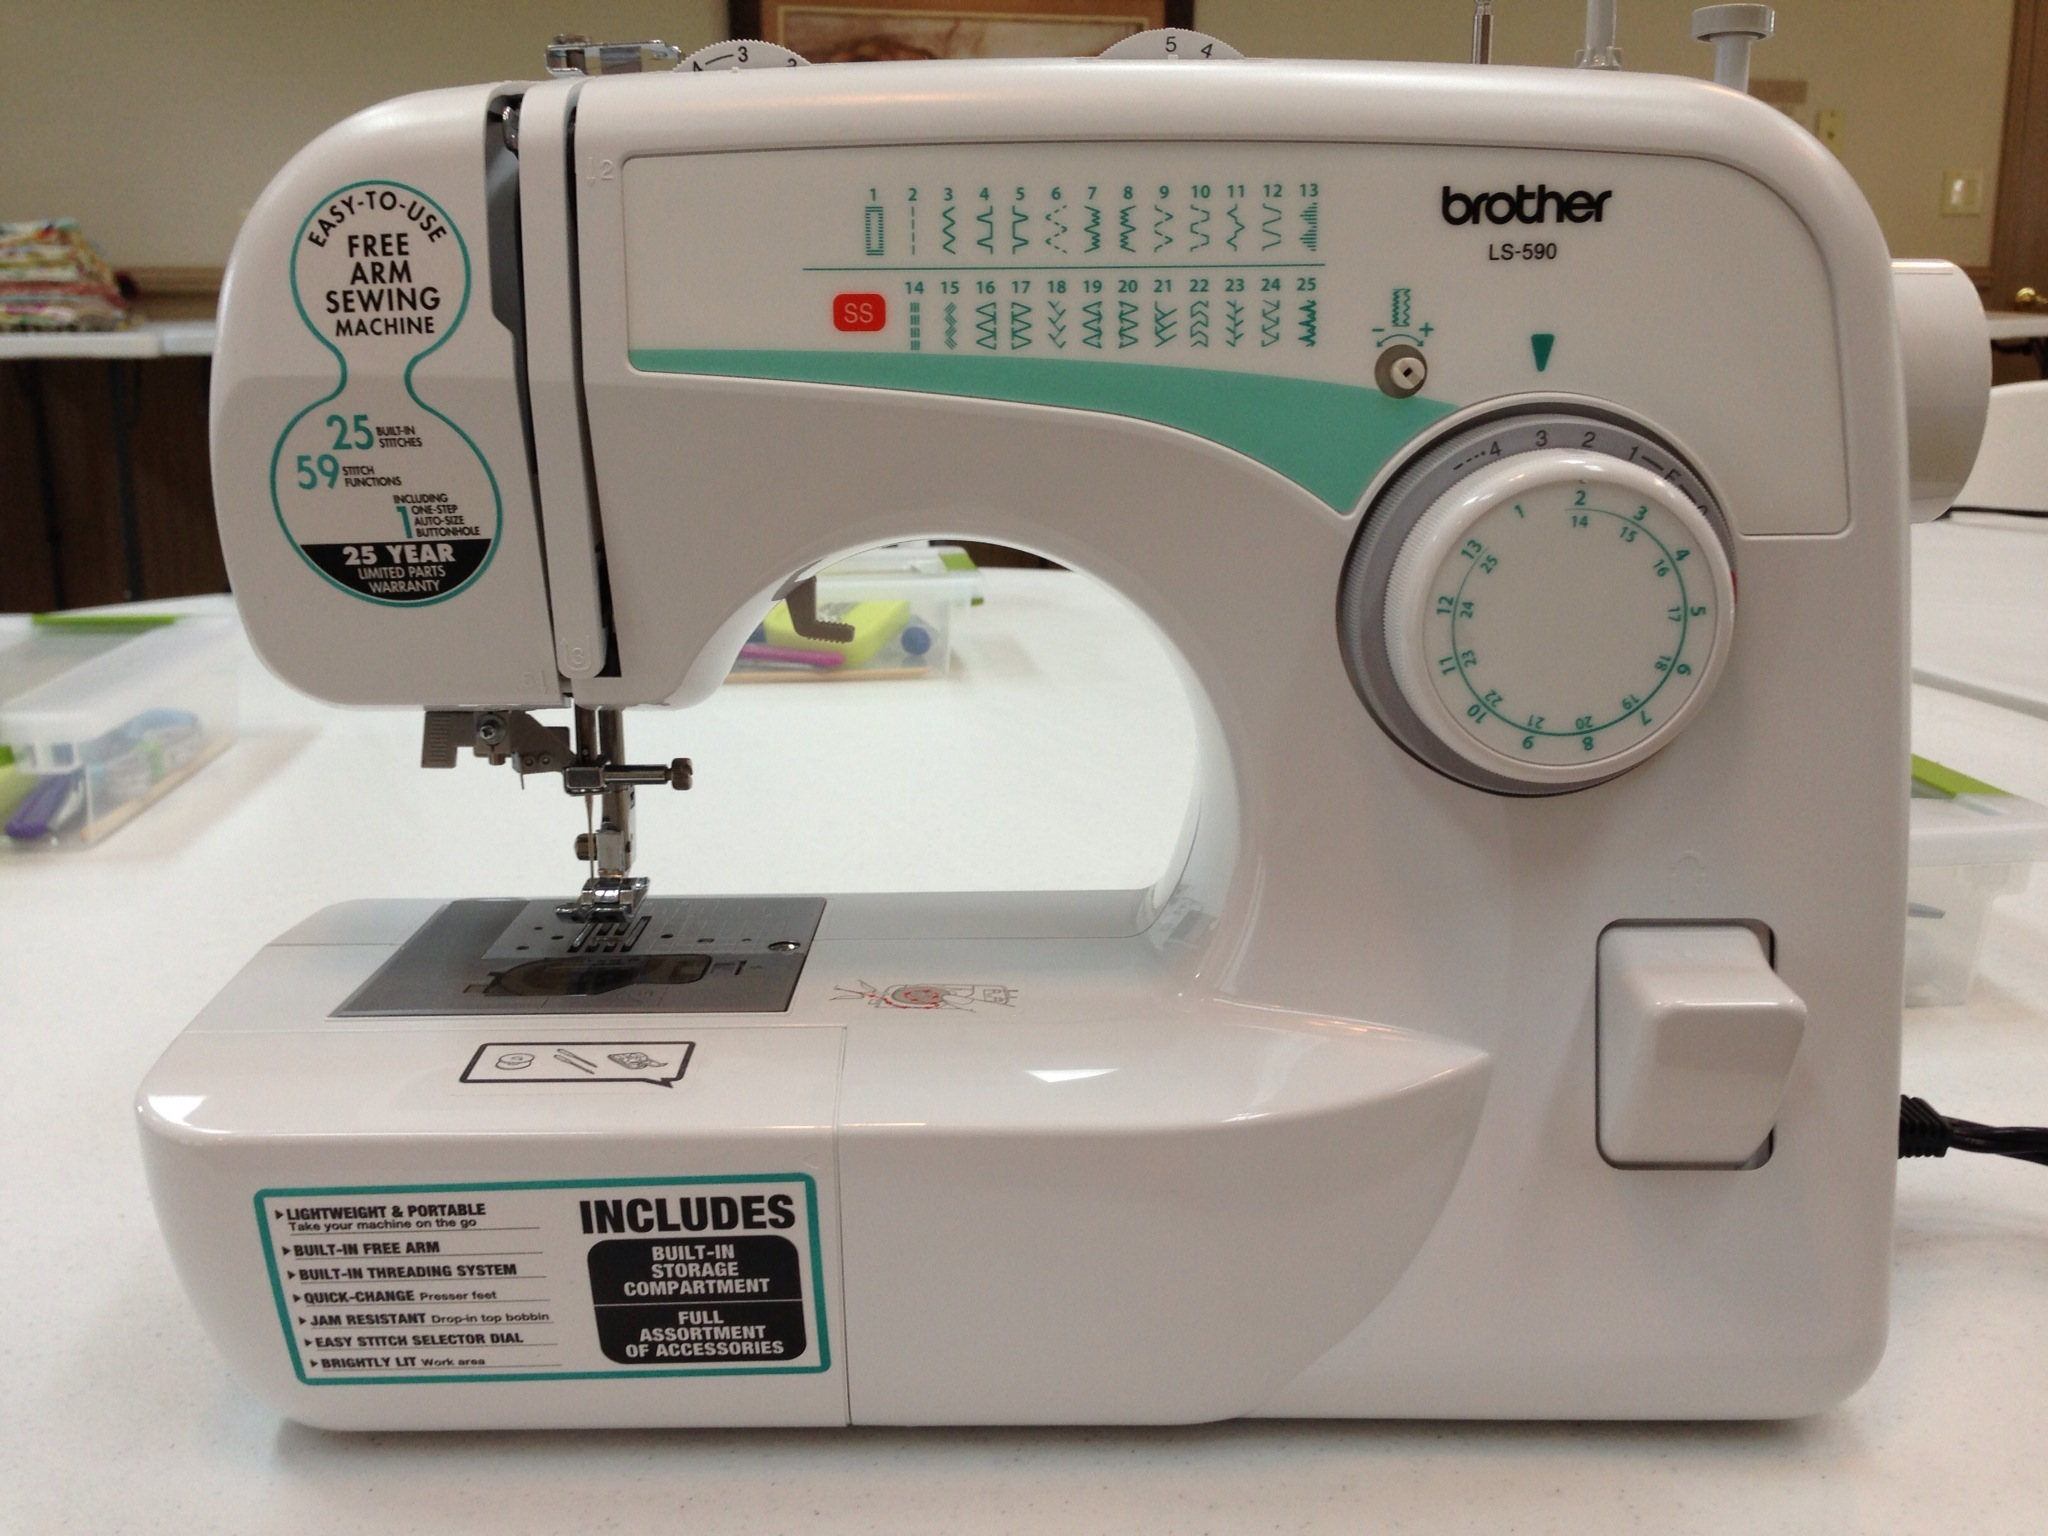 brothers ls 590 sewing machine